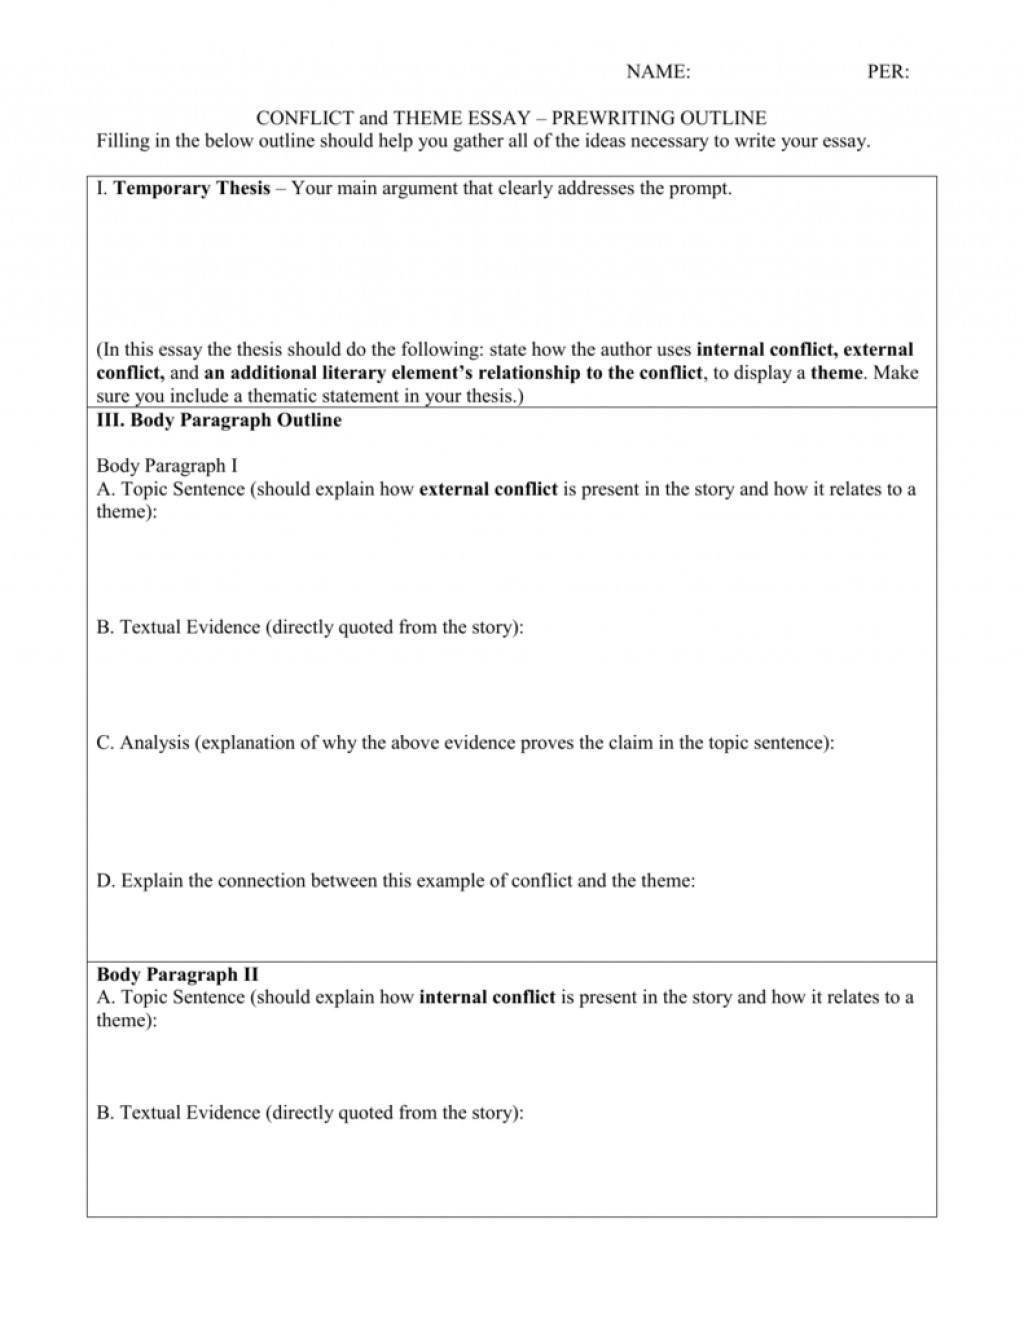 013 Essay Outline 008002500 1 Impressive Narrative Worksheet Writing Graphic Organizers Thematic Organizer Large